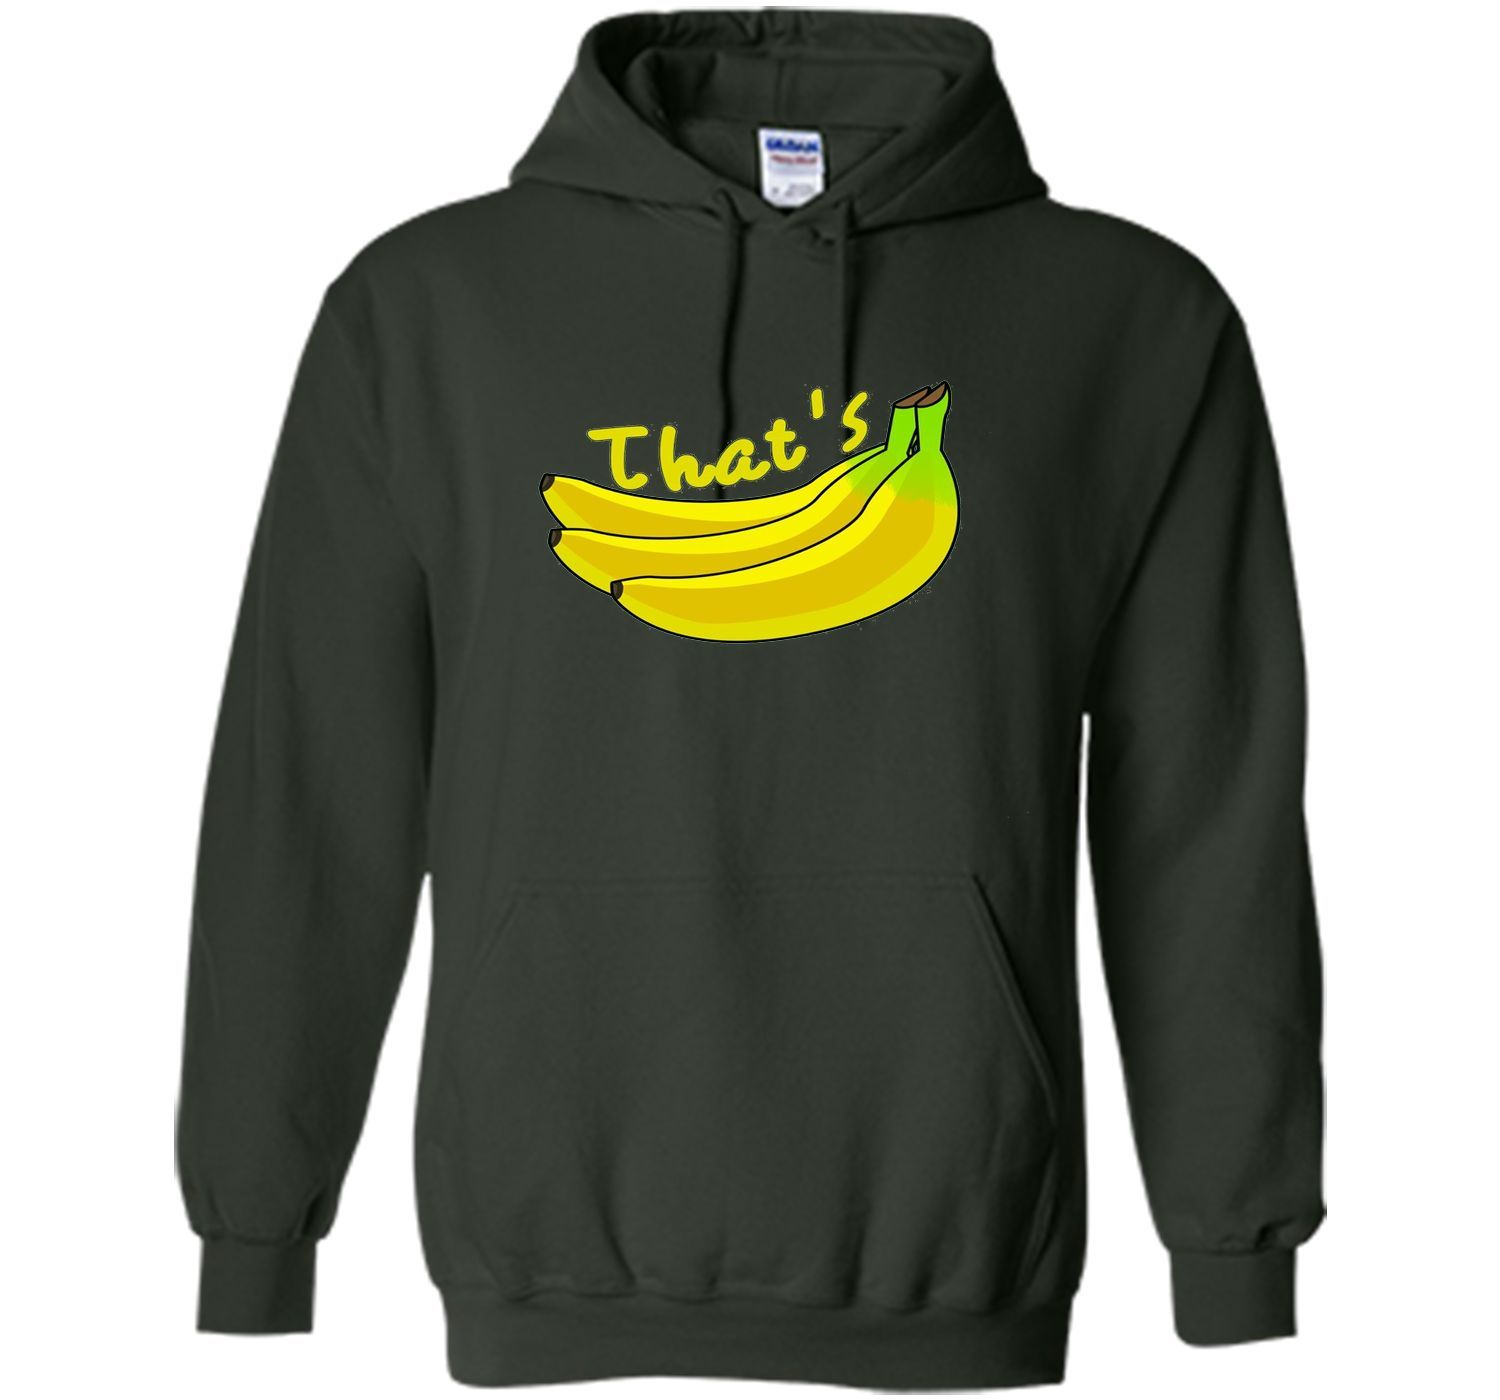 c7824dac That's Bananas Funny Monkey Banana T-Shirt cool shirt | Products ...